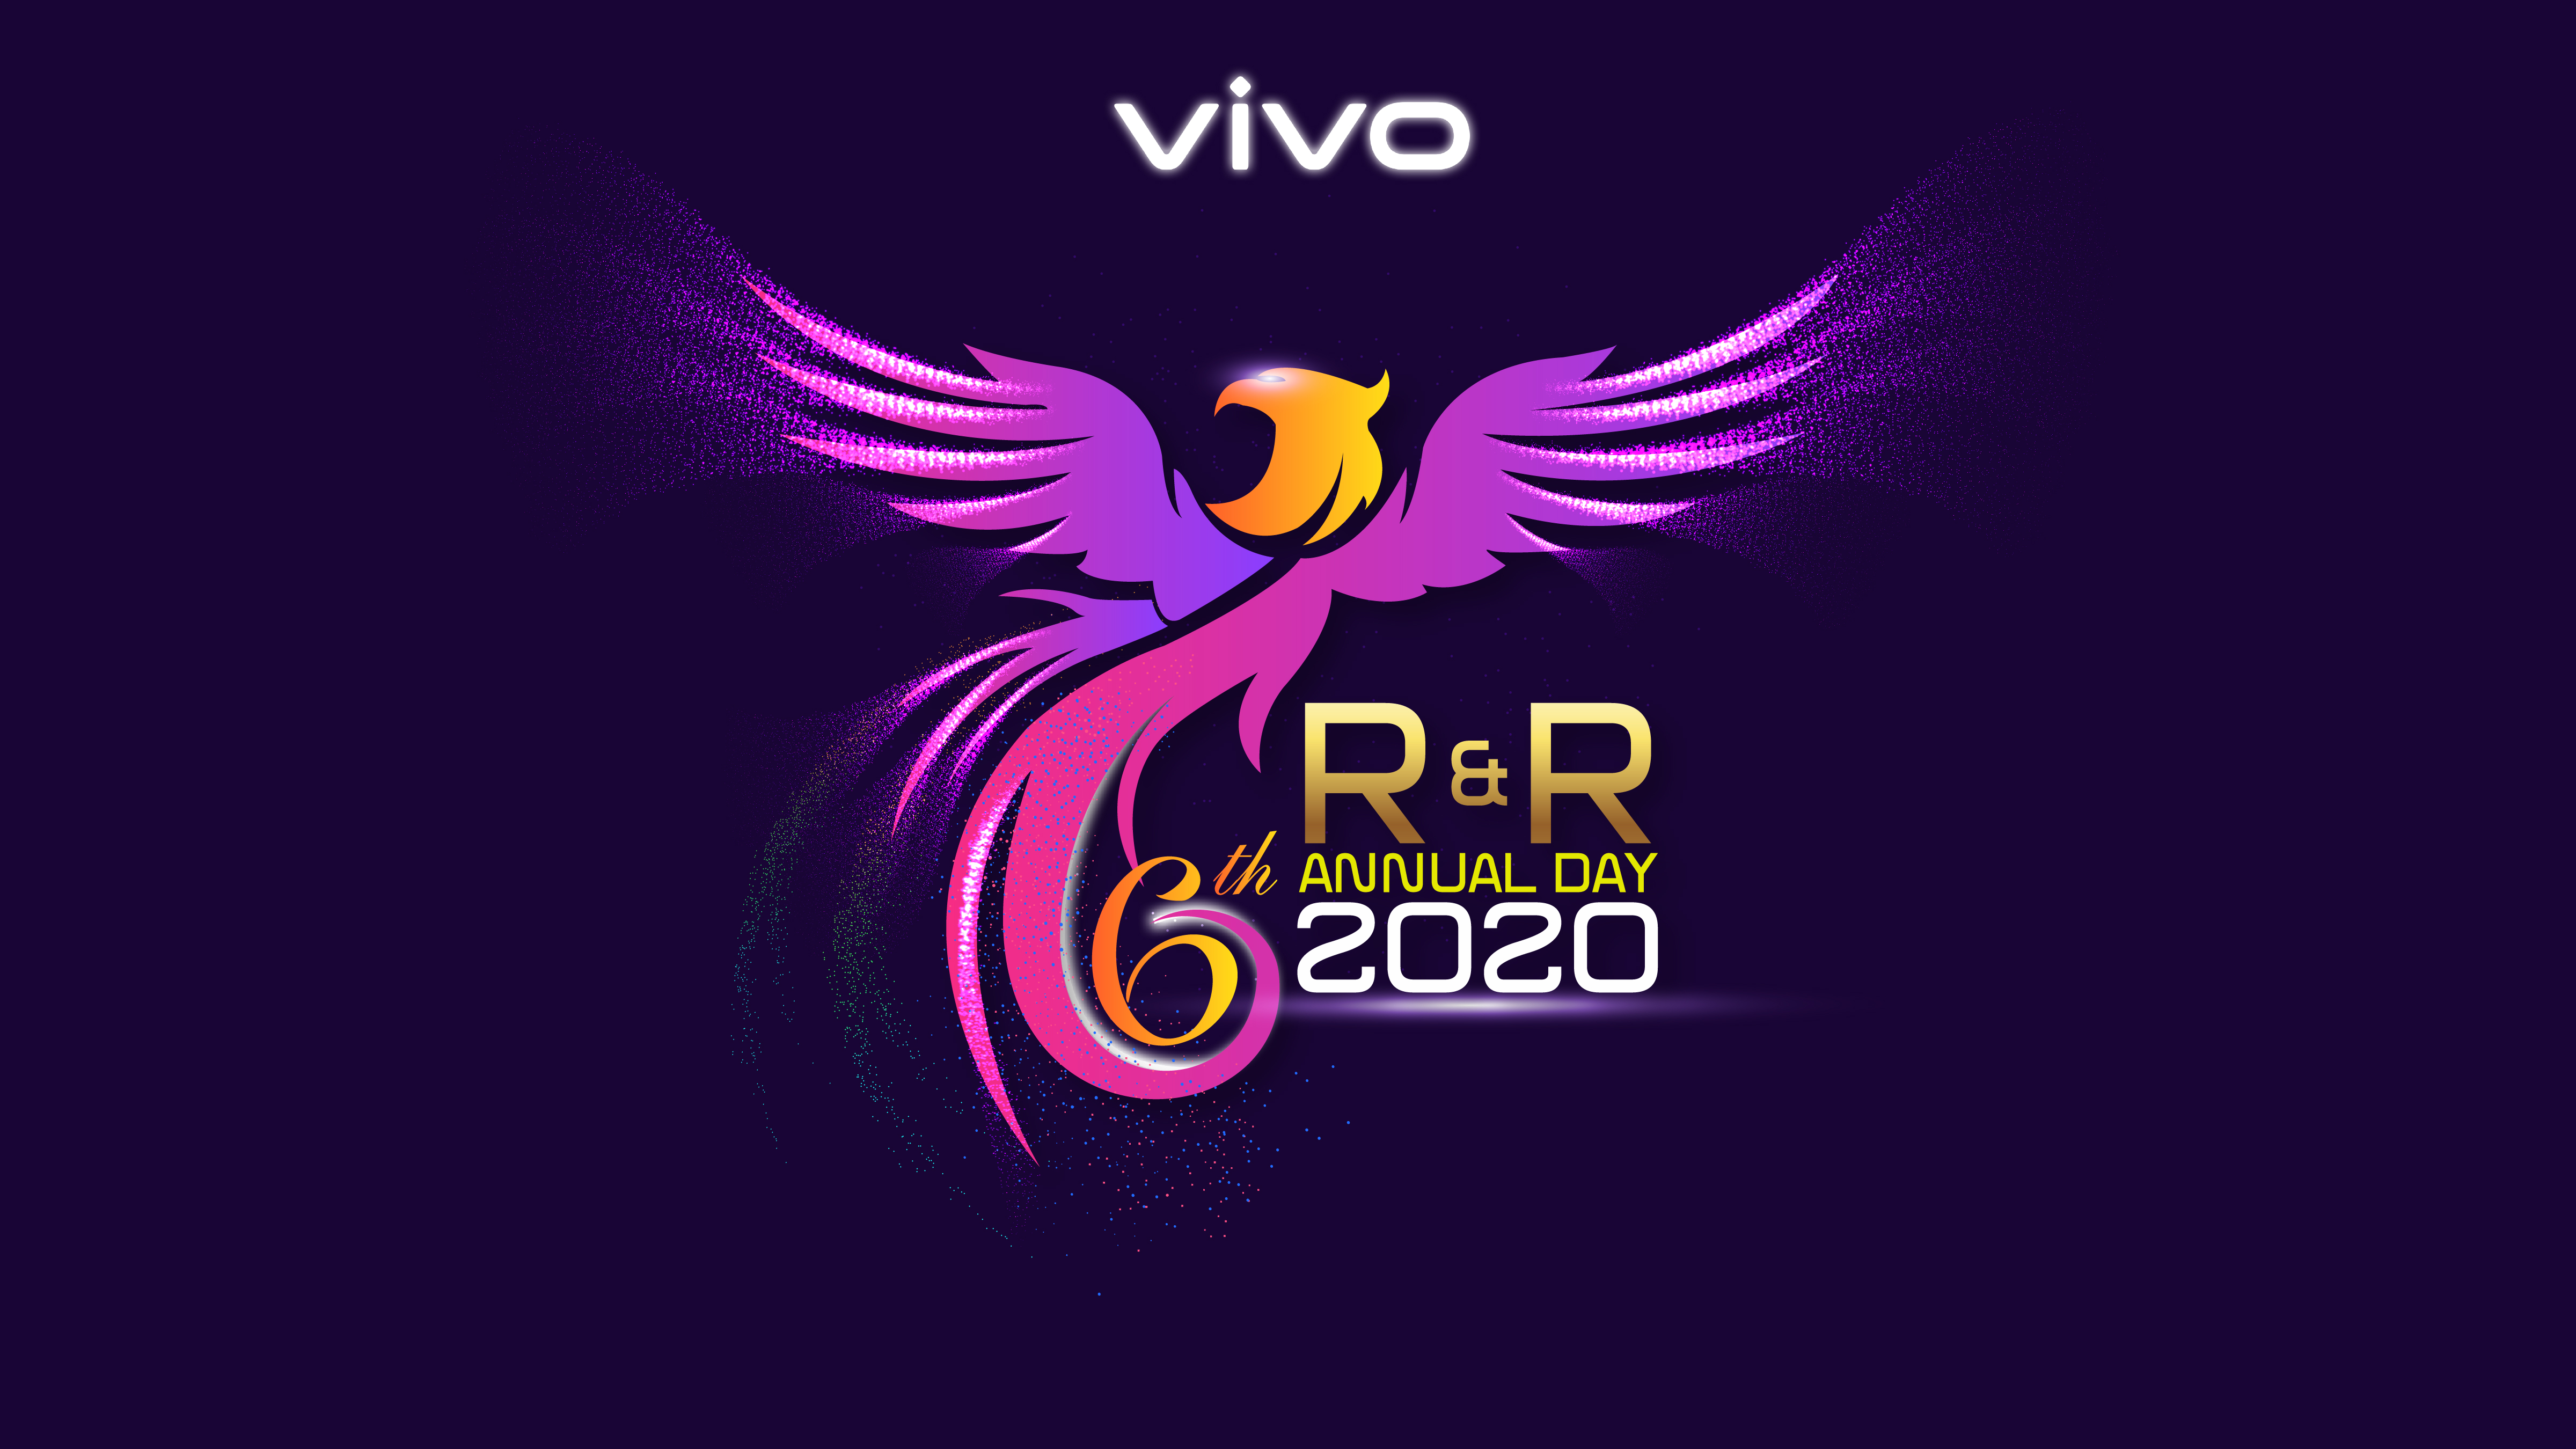 Rewards & Recognition 2020: 6th Year Celebration